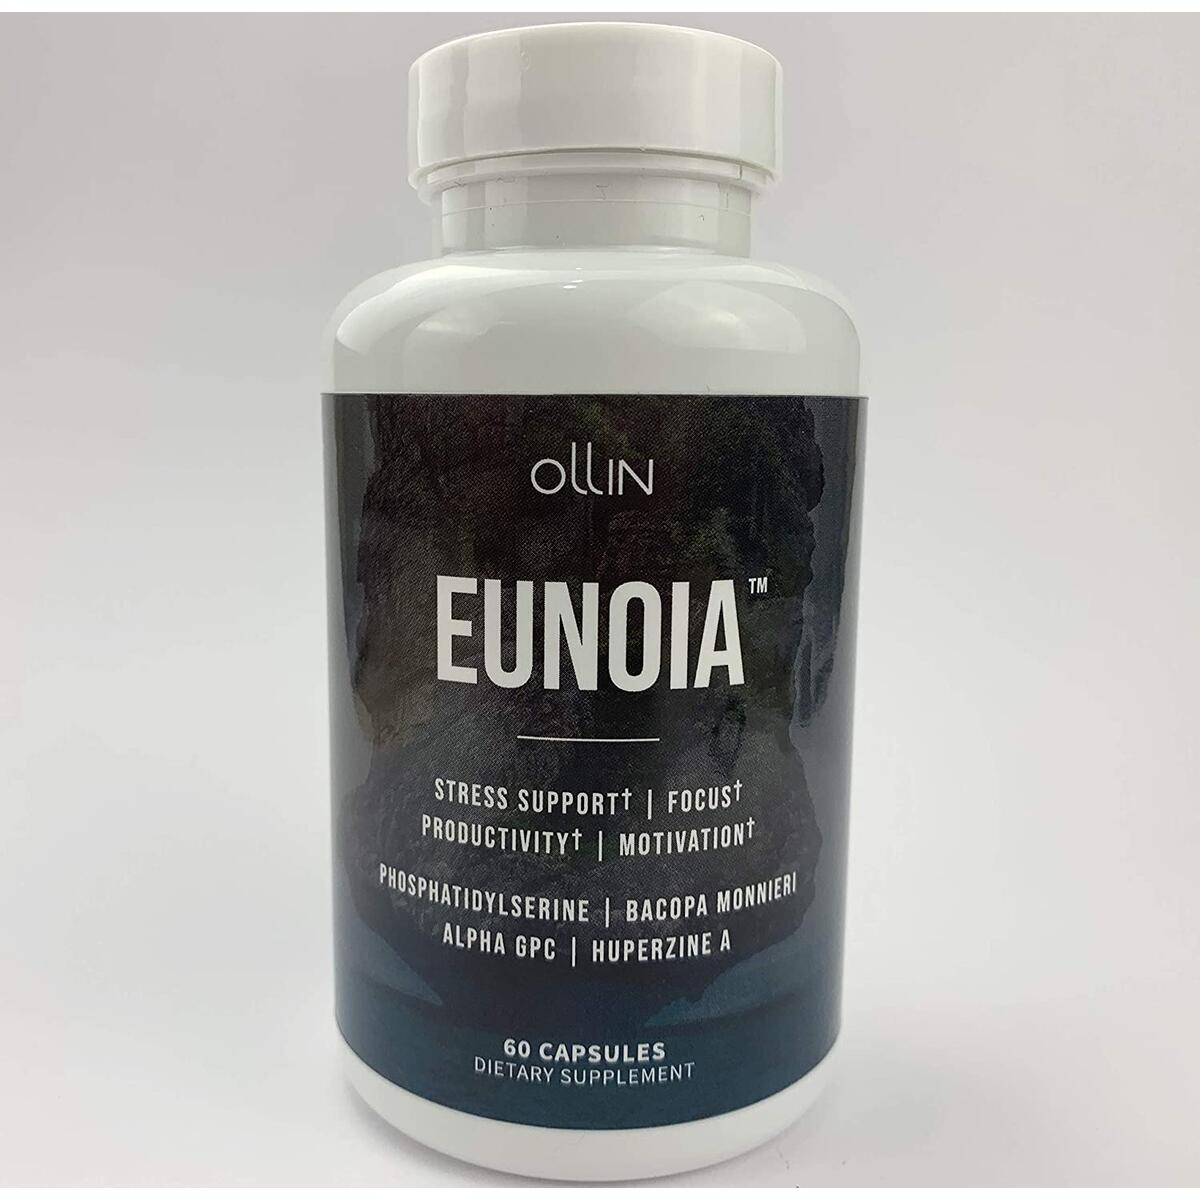 Eunoia | Premium Blend Supplement | Designed to Relieve Stress, Boost Focus and Increase Productivity | Featuring Premium Phosphatidylserine, Bacopa Monnieri and Alpha GPC | 60 Capsules